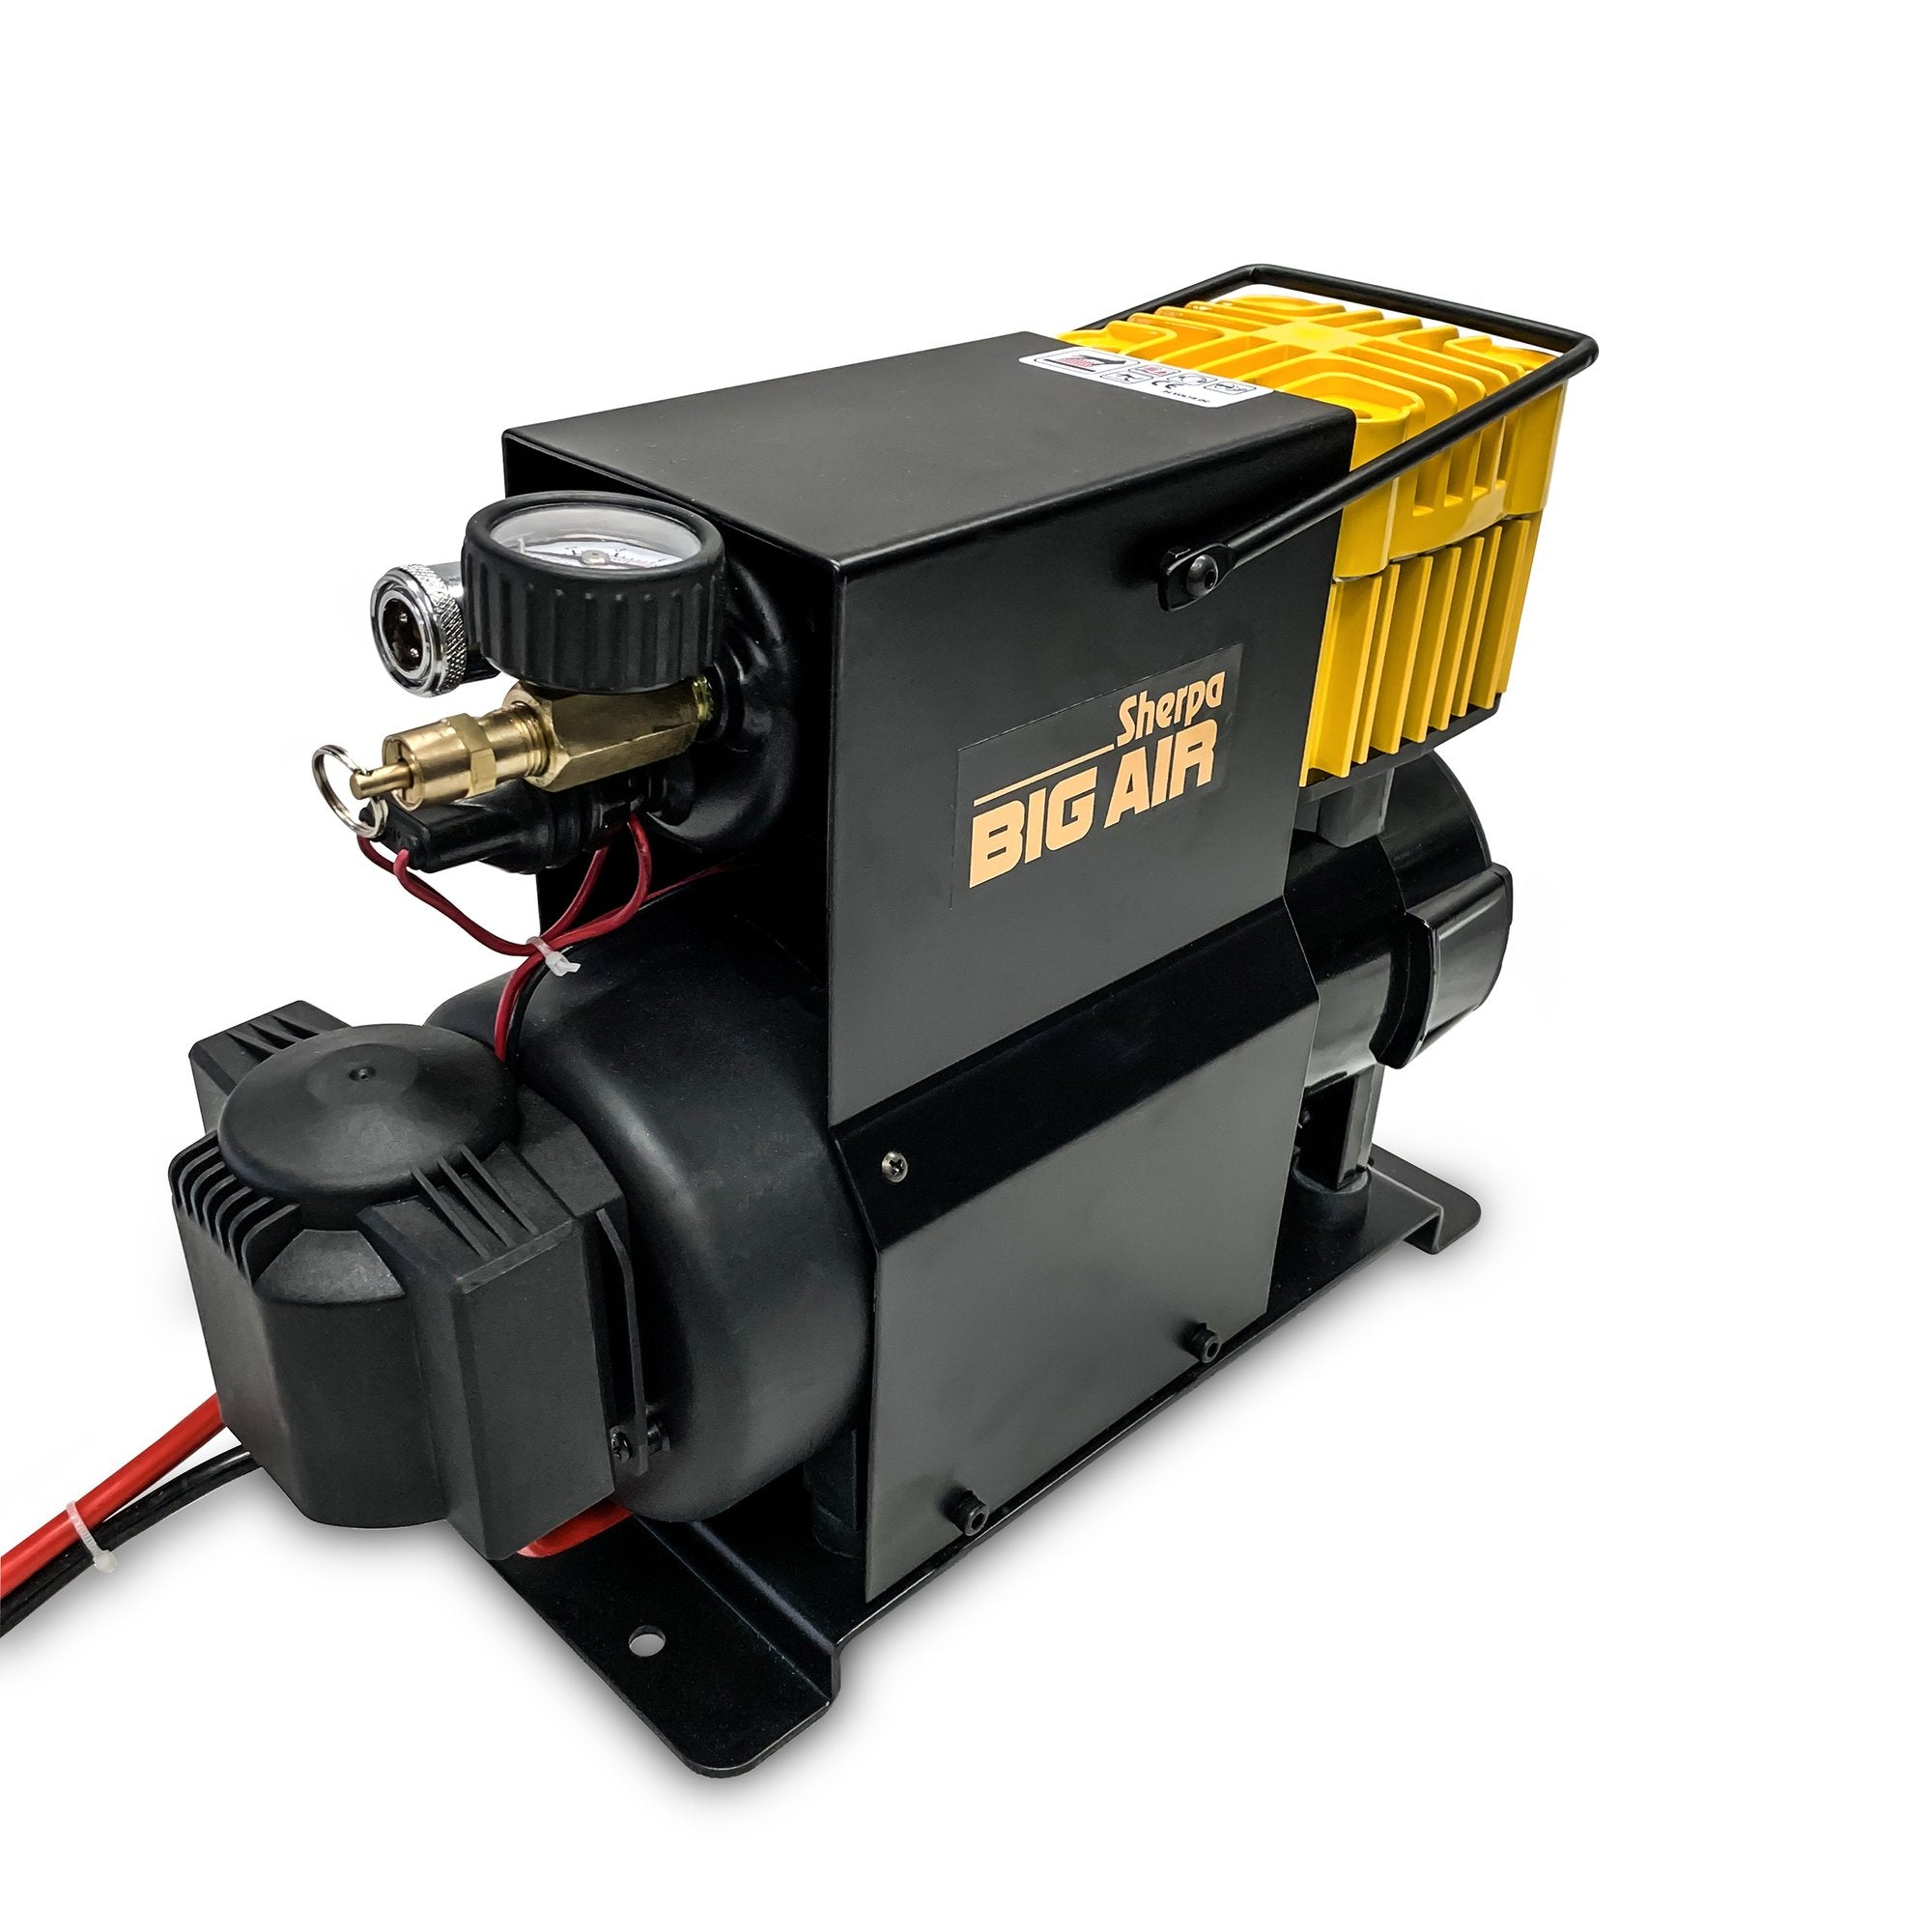 Sherpa DC Air Compressor Massive Flow (BIG-AIR)